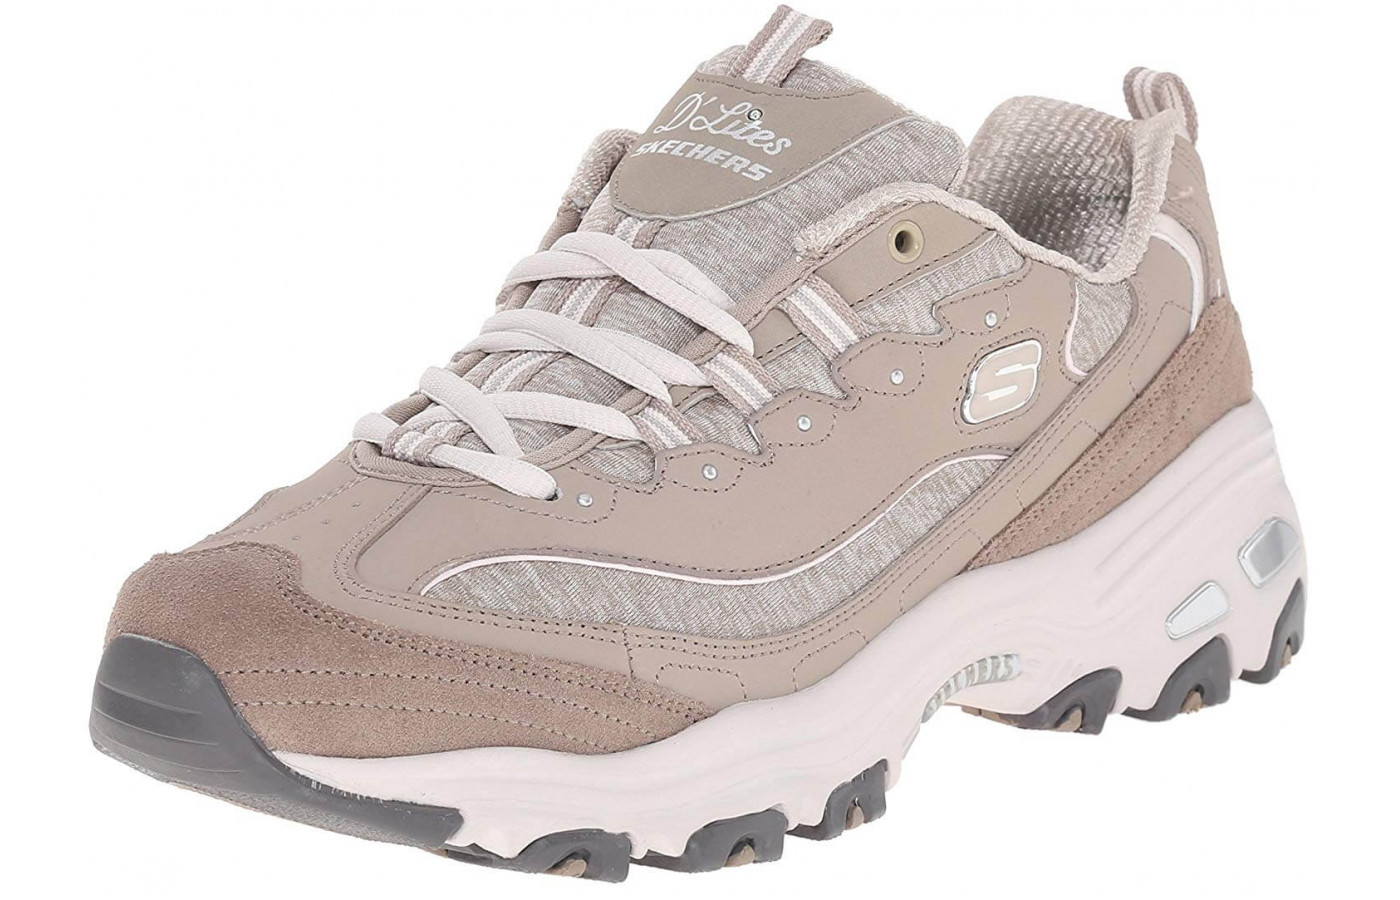 66f488b1039d Skechers D lites Reviewed - To Buy or Not in Apr 2019